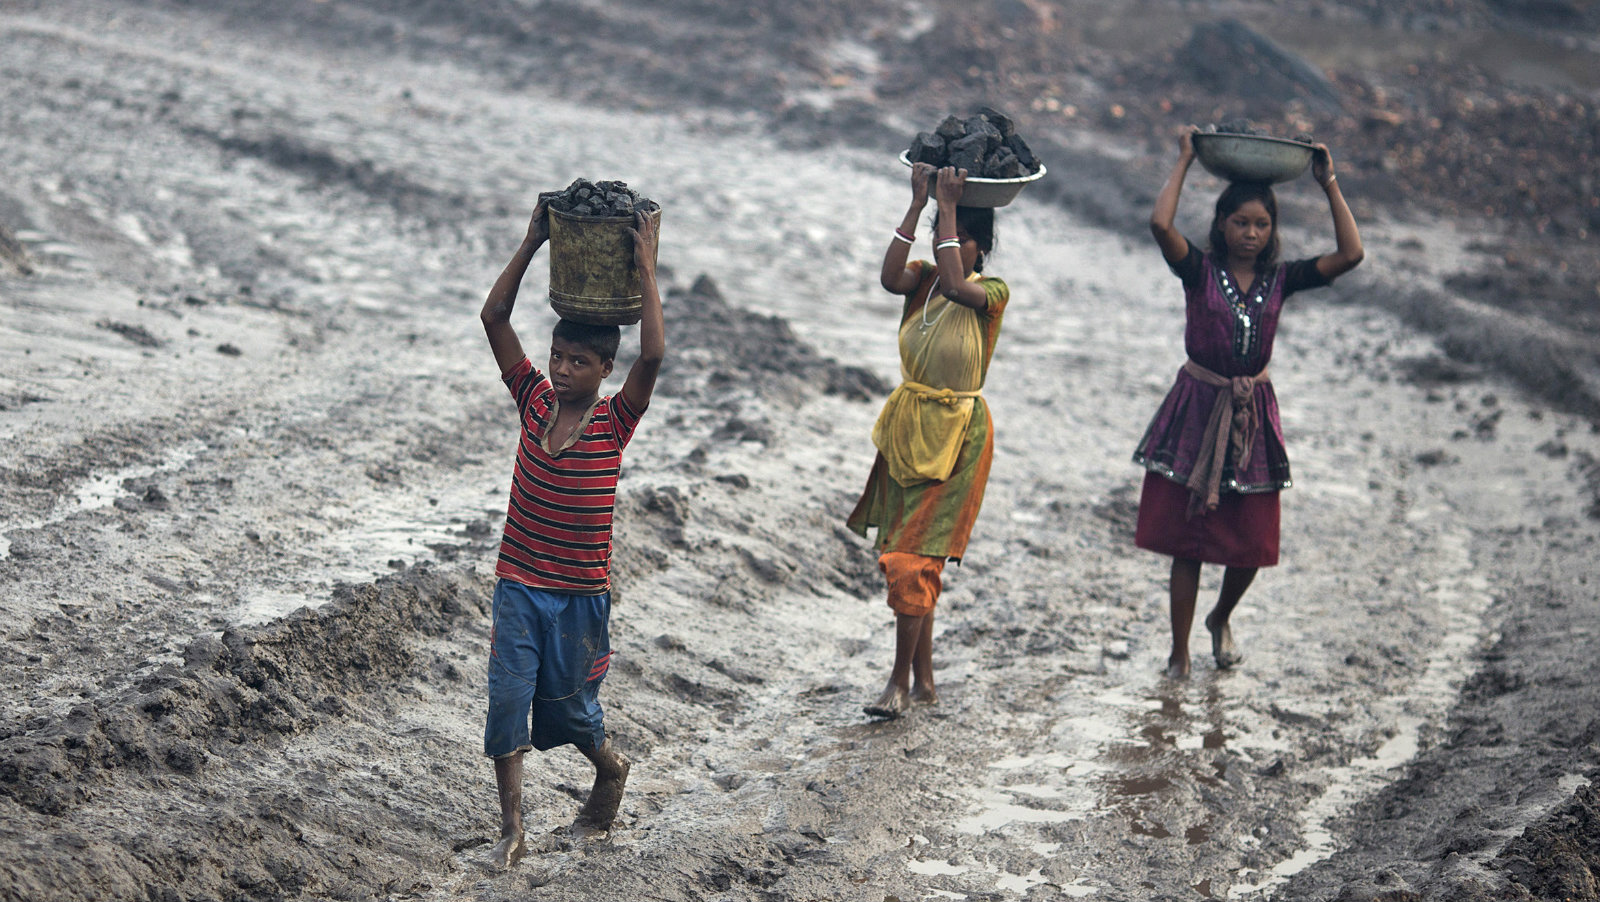 Locals carry coal from an open cast coal field at Dhanbad district in the eastern Indian state of Jharkhand September 20, 2012. With oil and gas output disappointing and hydropower at full throttle, Asia's third-largest economy still relies on coal for most of its vast energy needs. About 75 percent of India's coal demand is met by domestic production and, according to government plans, that won't change over the next five years. Picture taken September 20, 2012. To match INDIA-COAL/